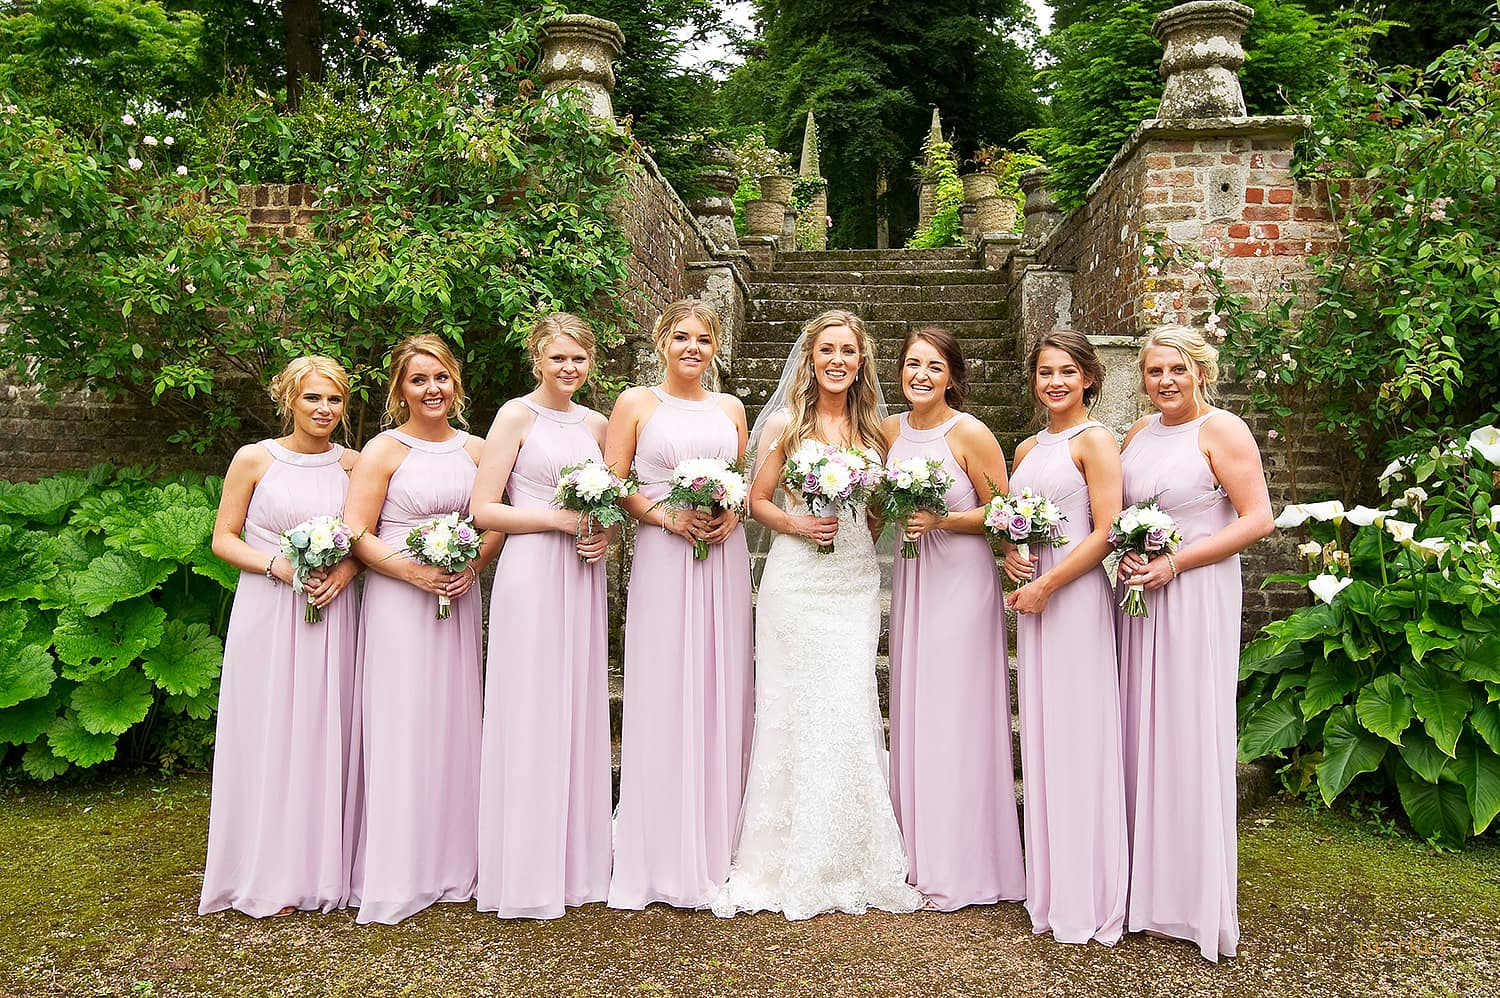 Bride and bridesmaids in pink dresses in gardens of Langdon Court in Devon.